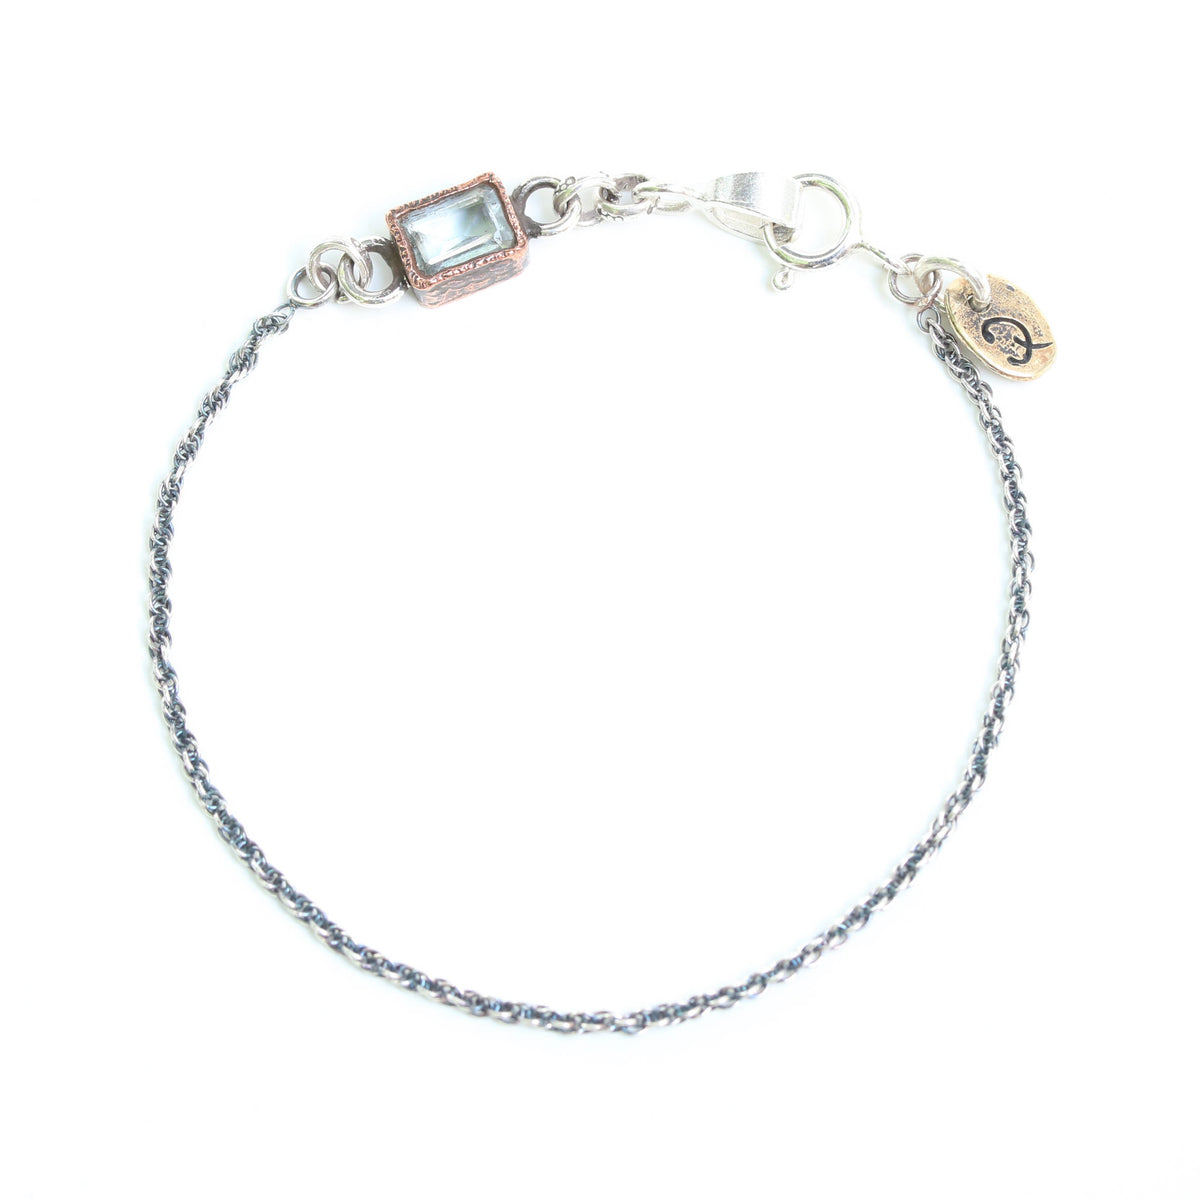 Octagon faceted blue topaz bracelet in copper bezel setting and sterling silver oxidized double rope chain